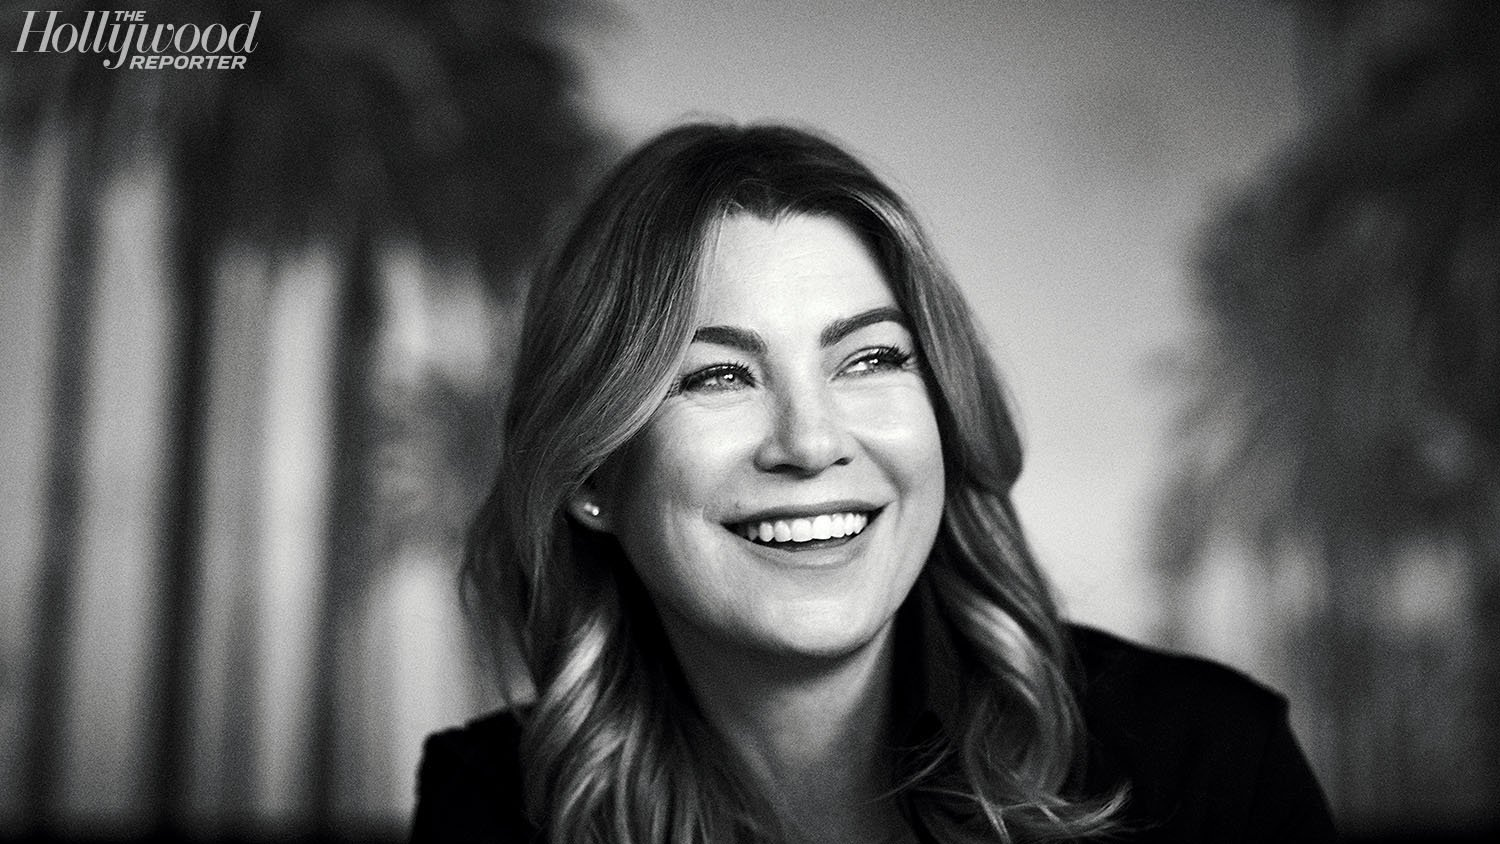 Ellen Pompeo smiling portrait photo blazer hair look